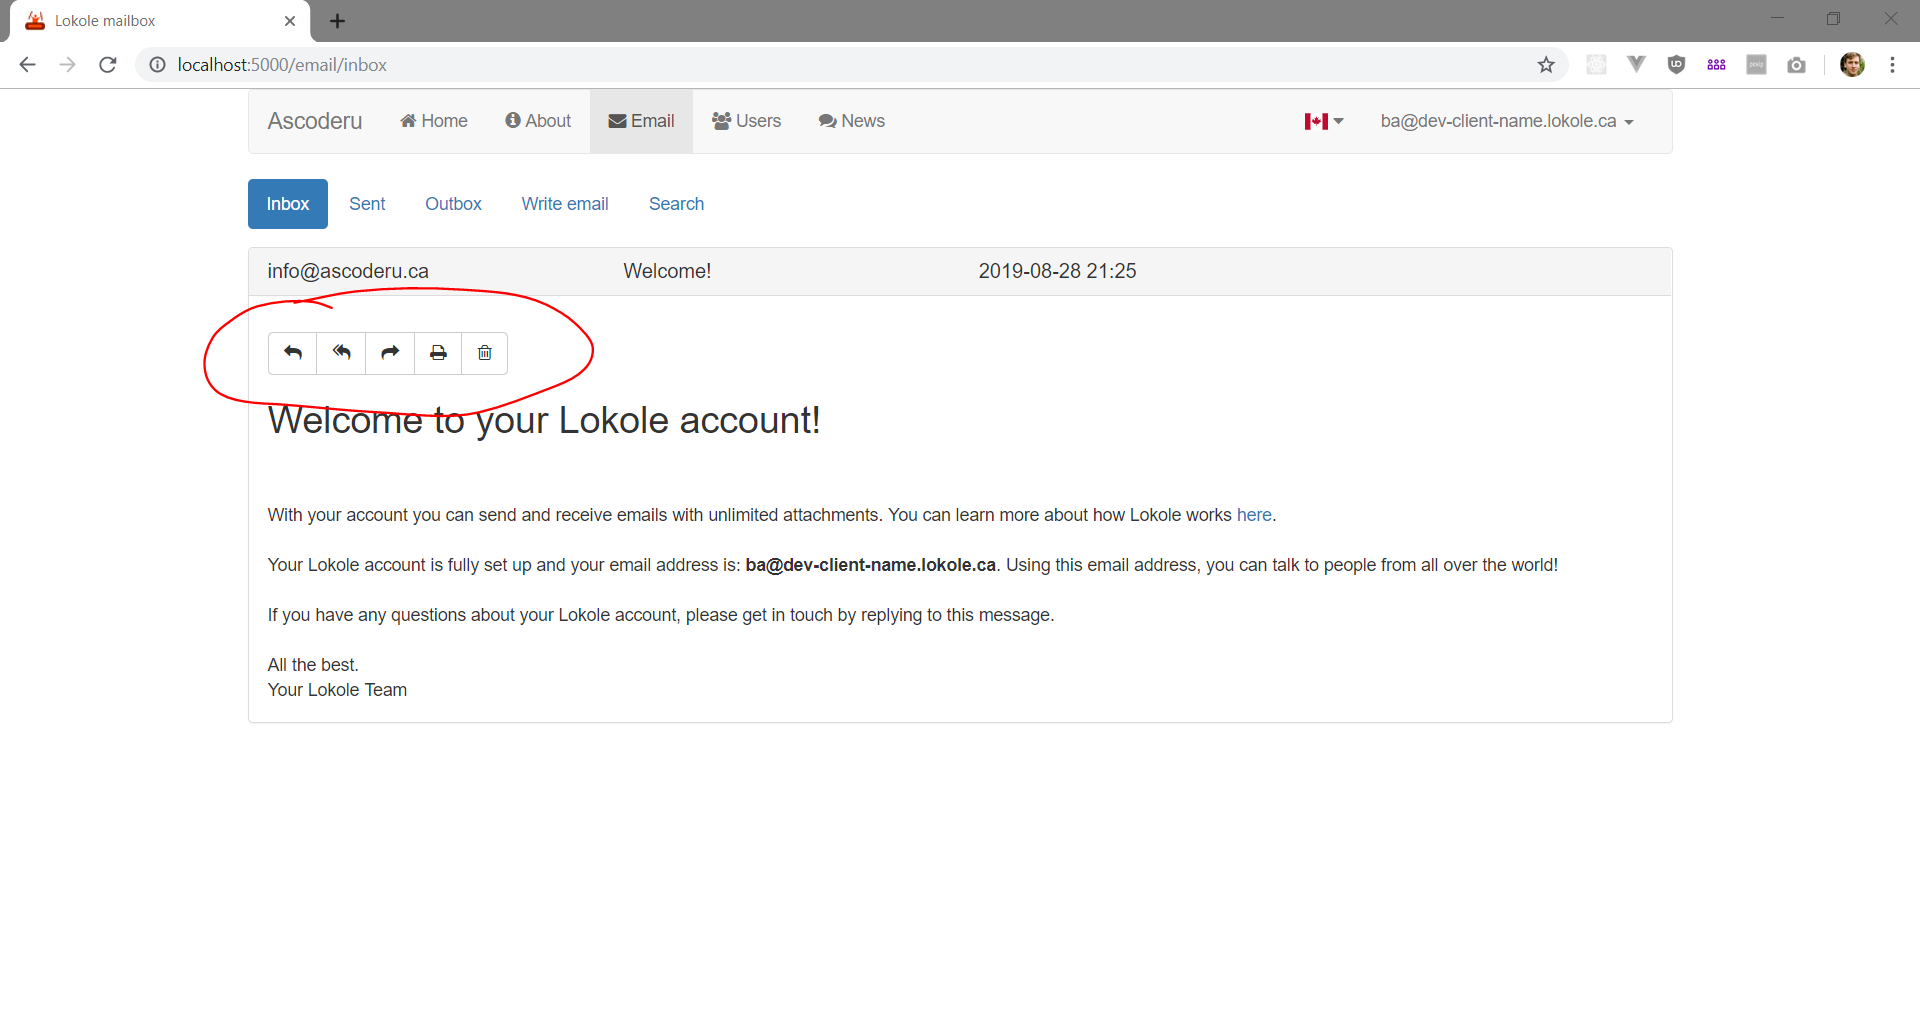 Screenshot showing email actions at the top of the page